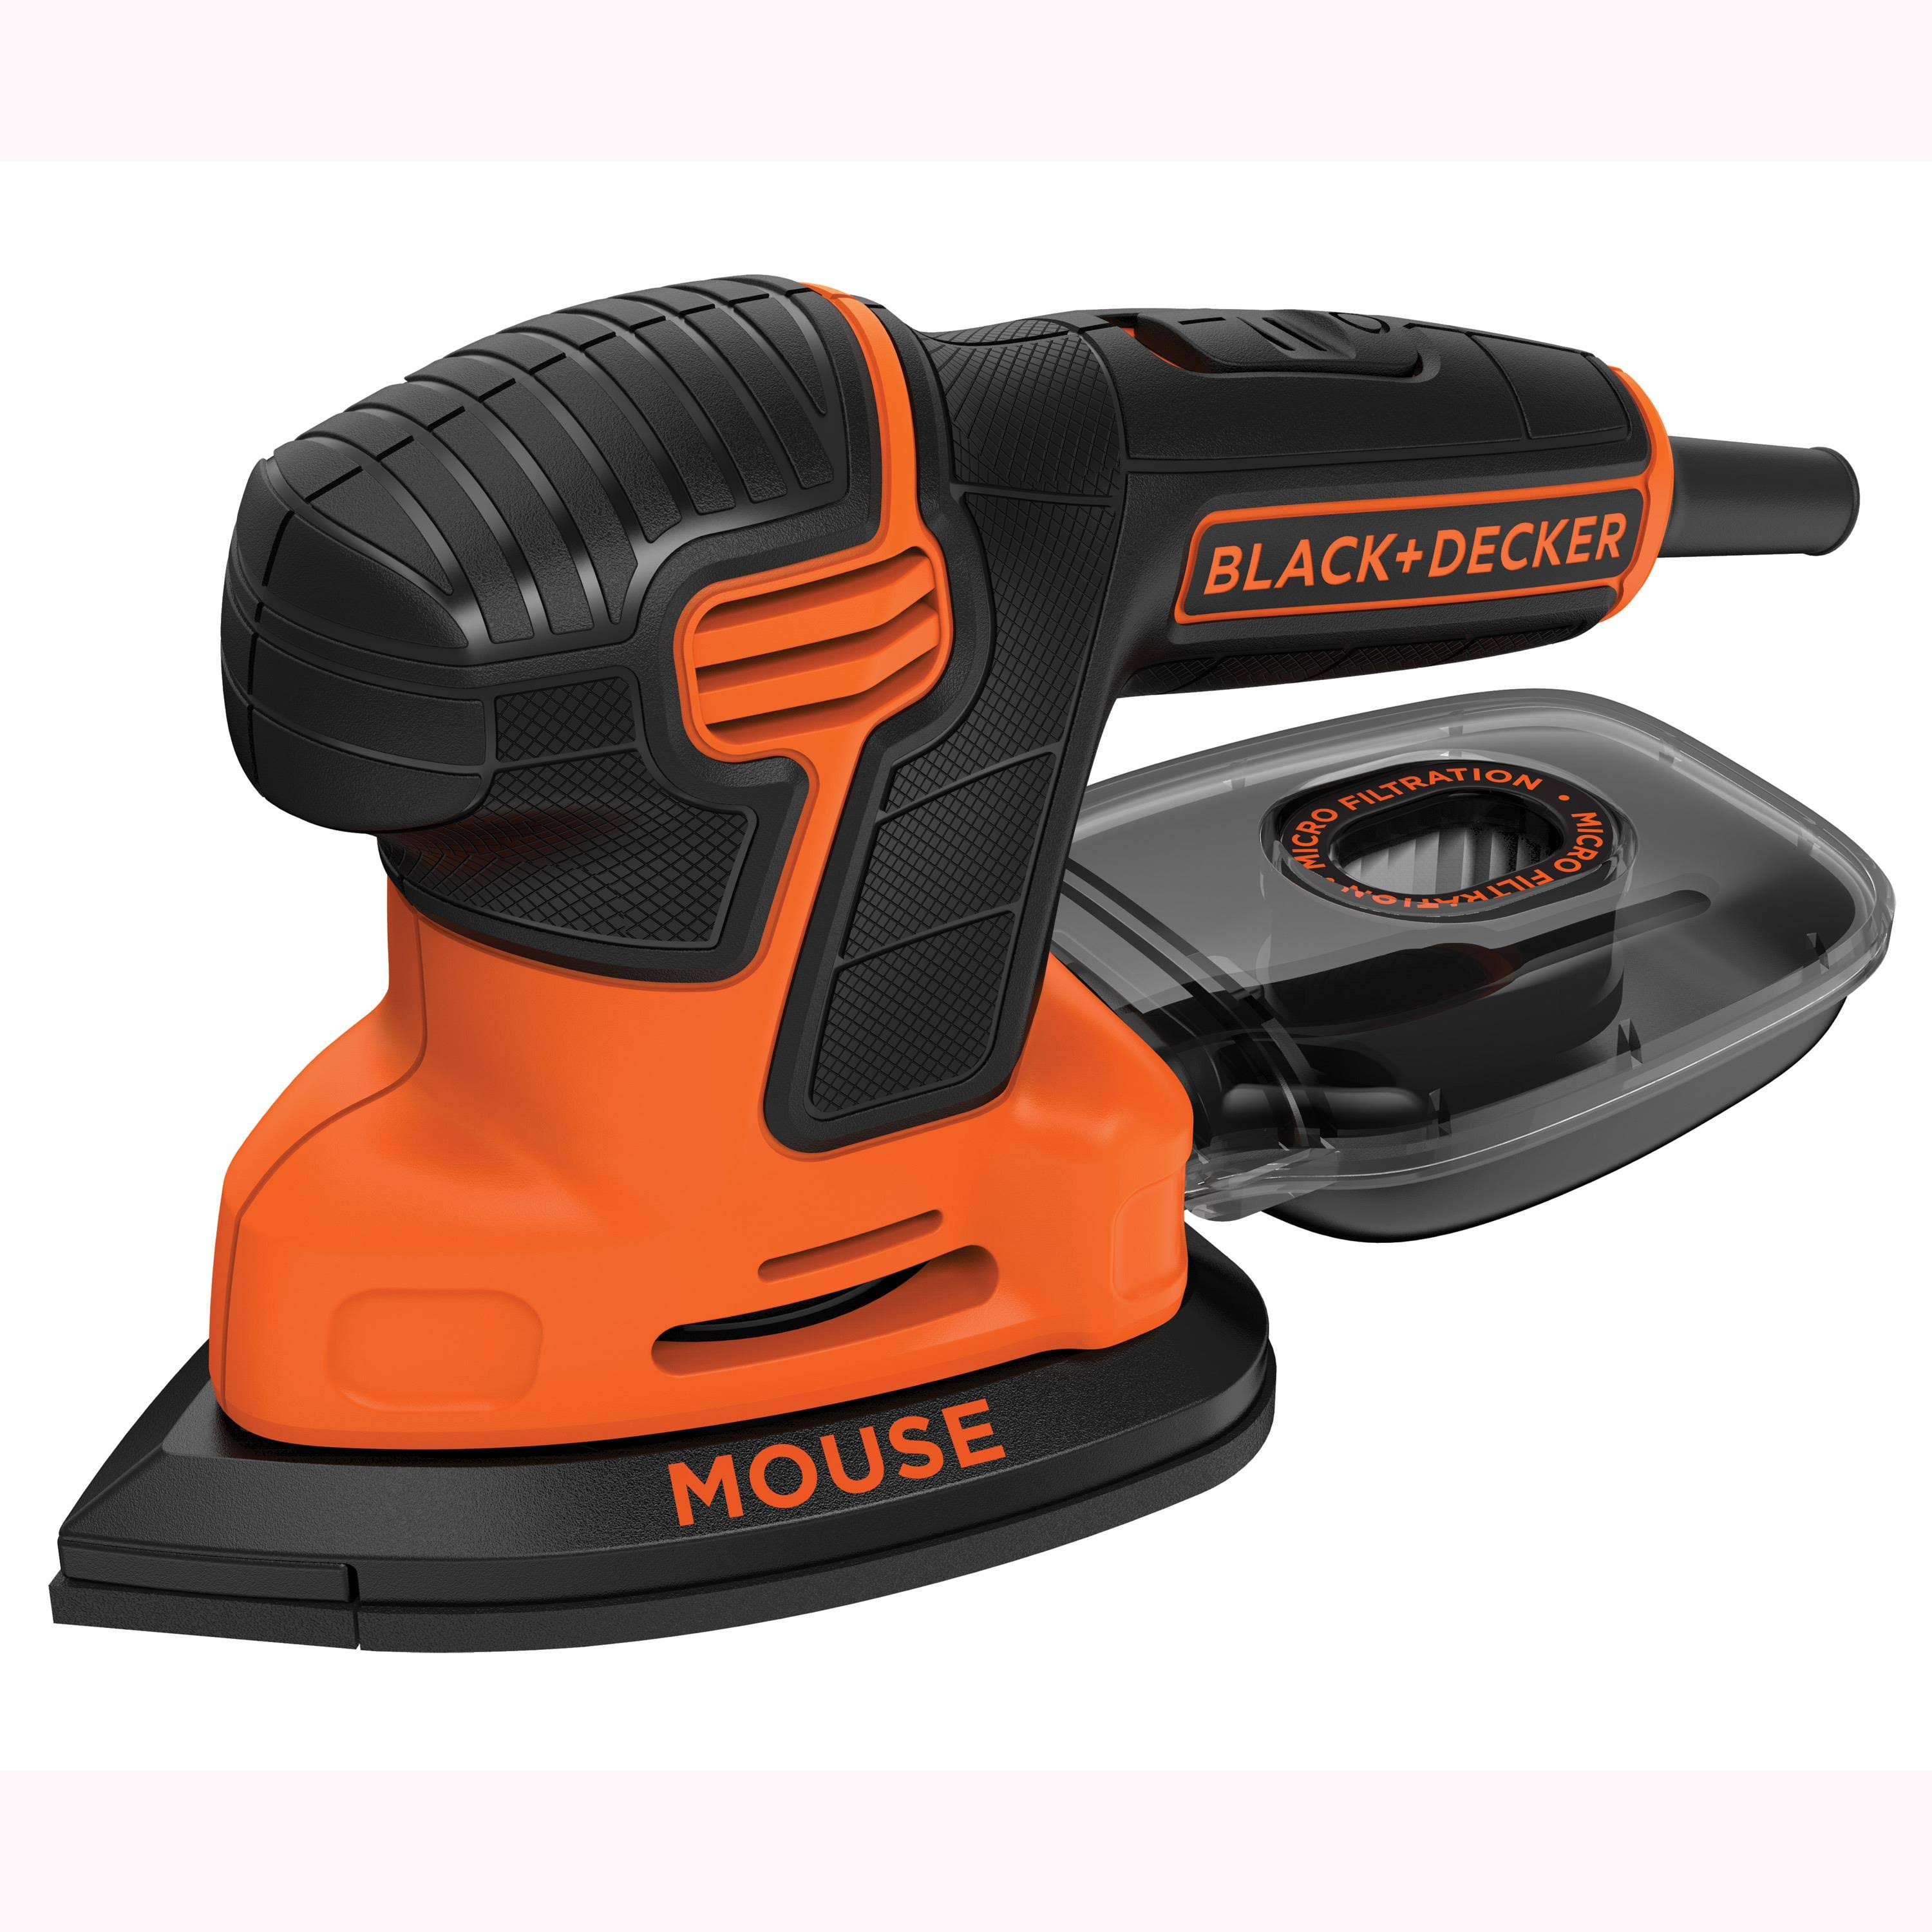 Black & Decker Mouse Compact Sander